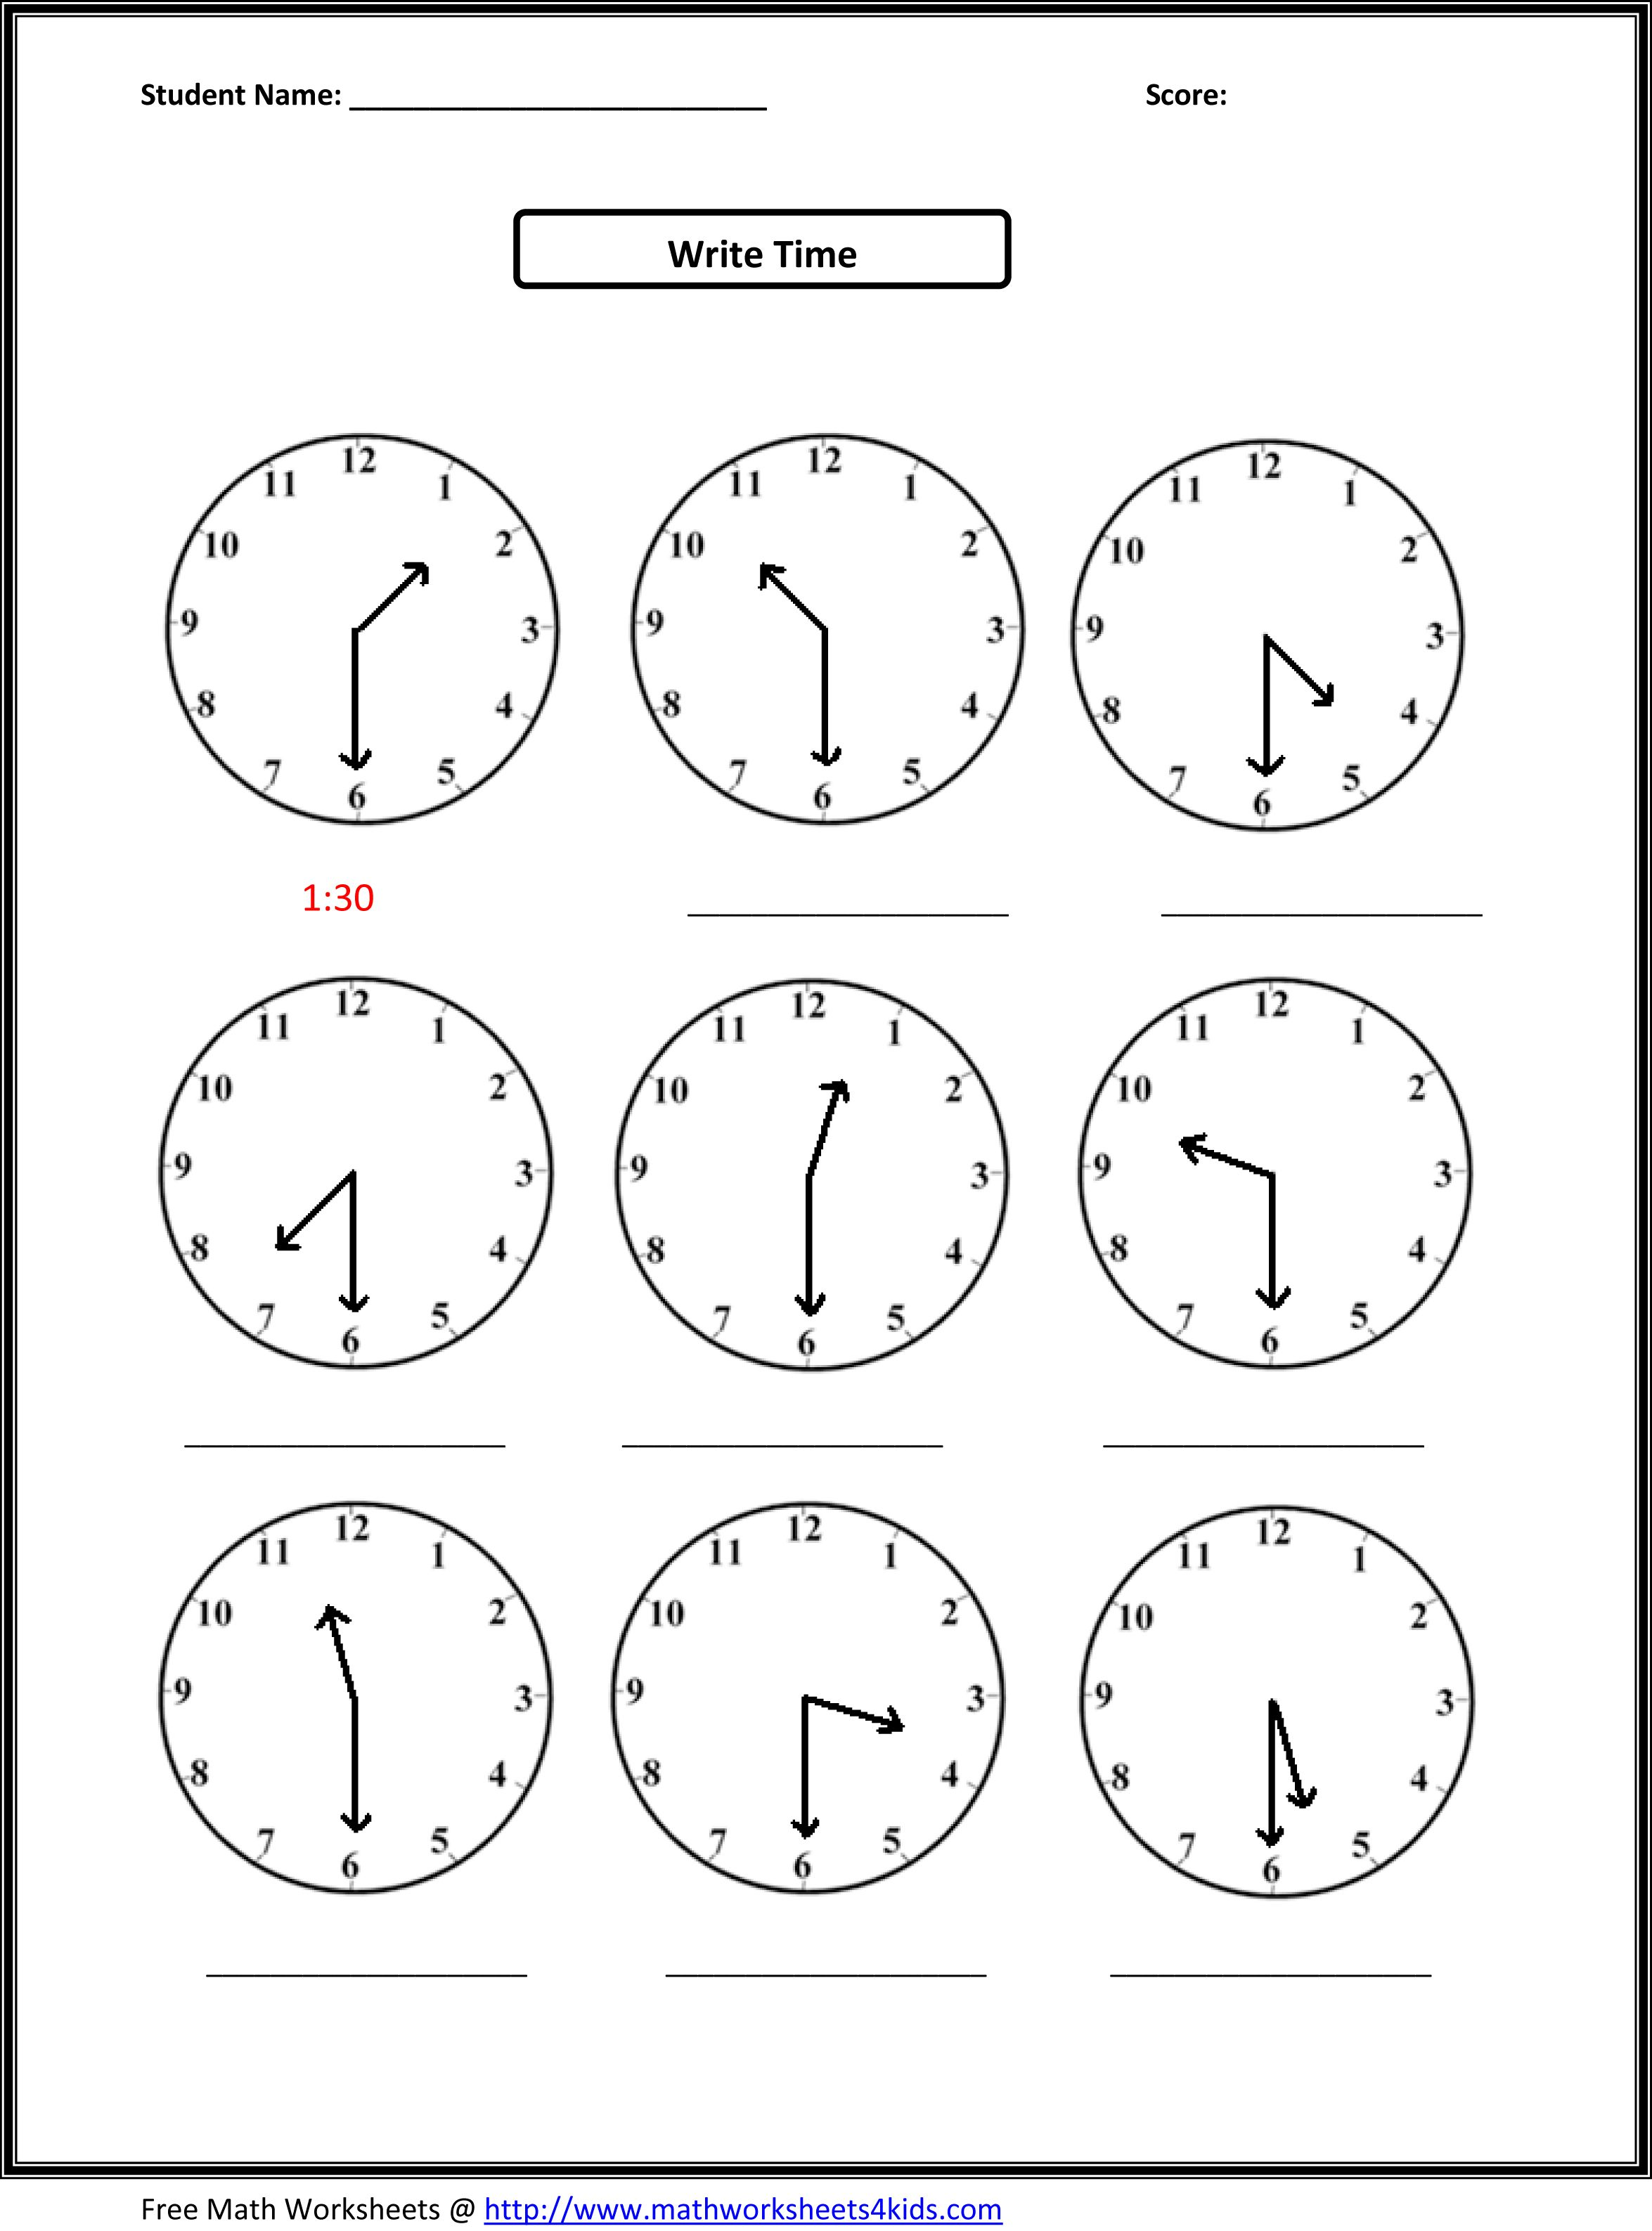 Proatmealus  Remarkable Worksheet On Time For Grade   Reocurent With Heavenly Free Printable Telling Time Worksheets Nd Grade  Reocurent With Comely Possessive Adjectives And Possessive Pronouns Worksheets Pdf Also September  Reading Comprehension Worksheet In Addition Bible Scavenger Hunt Worksheet And Verb Tense Shift Worksheets As Well As Free Alphabet Tracing Worksheets Additionally Plane And Solid Shapes Worksheets From Reocurentcom With Proatmealus  Heavenly Worksheet On Time For Grade   Reocurent With Comely Free Printable Telling Time Worksheets Nd Grade  Reocurent And Remarkable Possessive Adjectives And Possessive Pronouns Worksheets Pdf Also September  Reading Comprehension Worksheet In Addition Bible Scavenger Hunt Worksheet From Reocurentcom